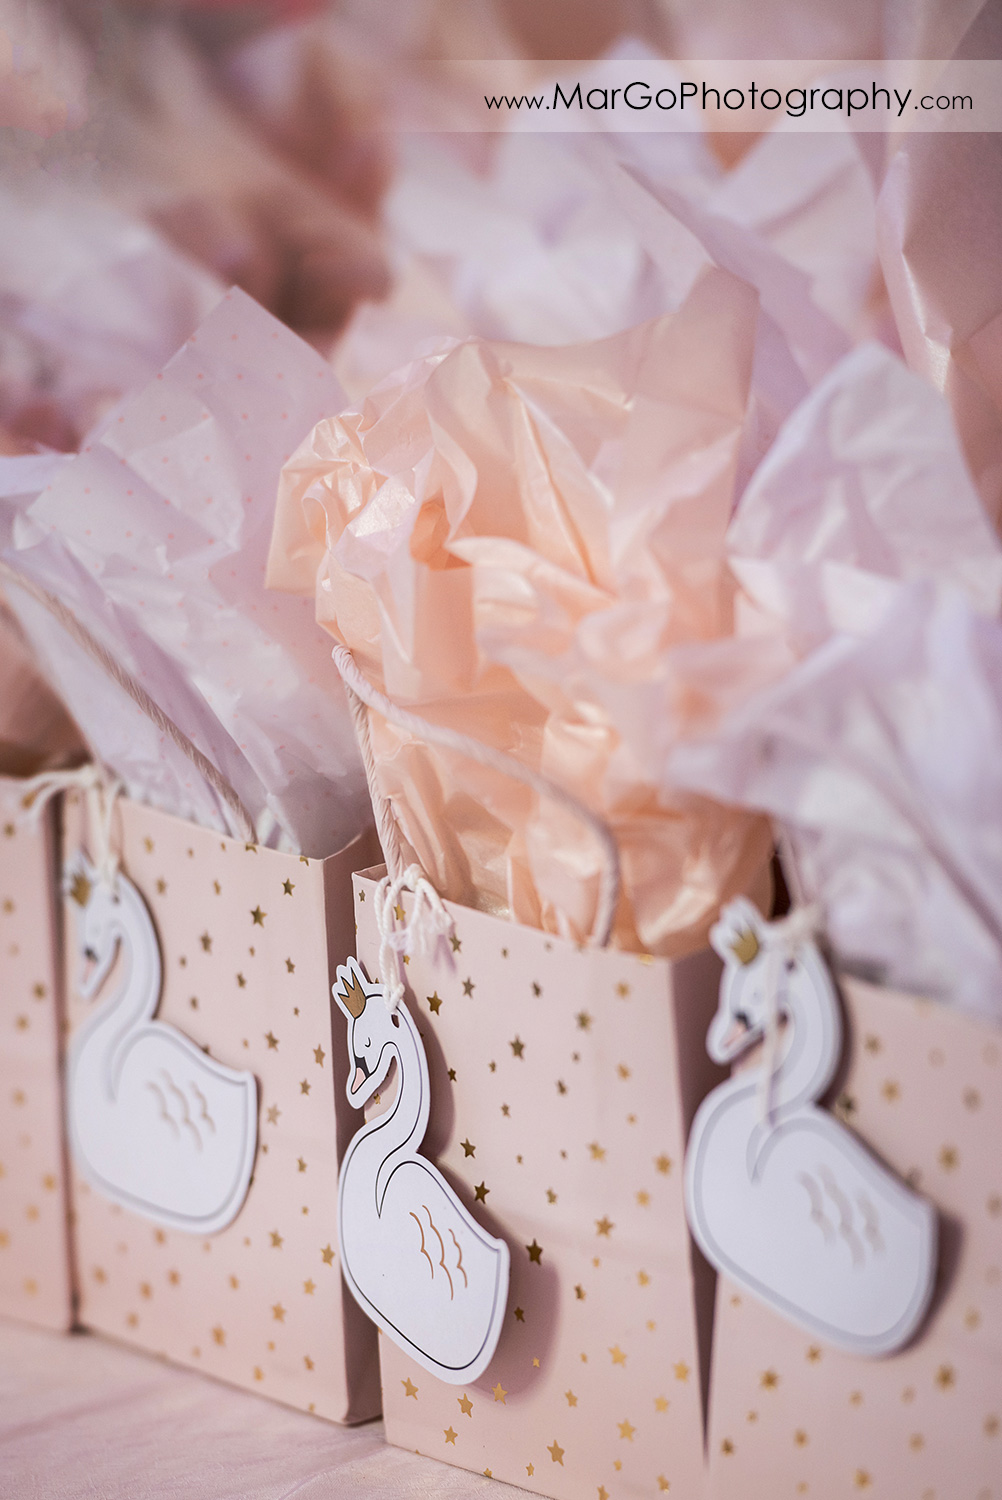 pink party favor bags decorated with white swans and gold stars at Newark Oasis Palace